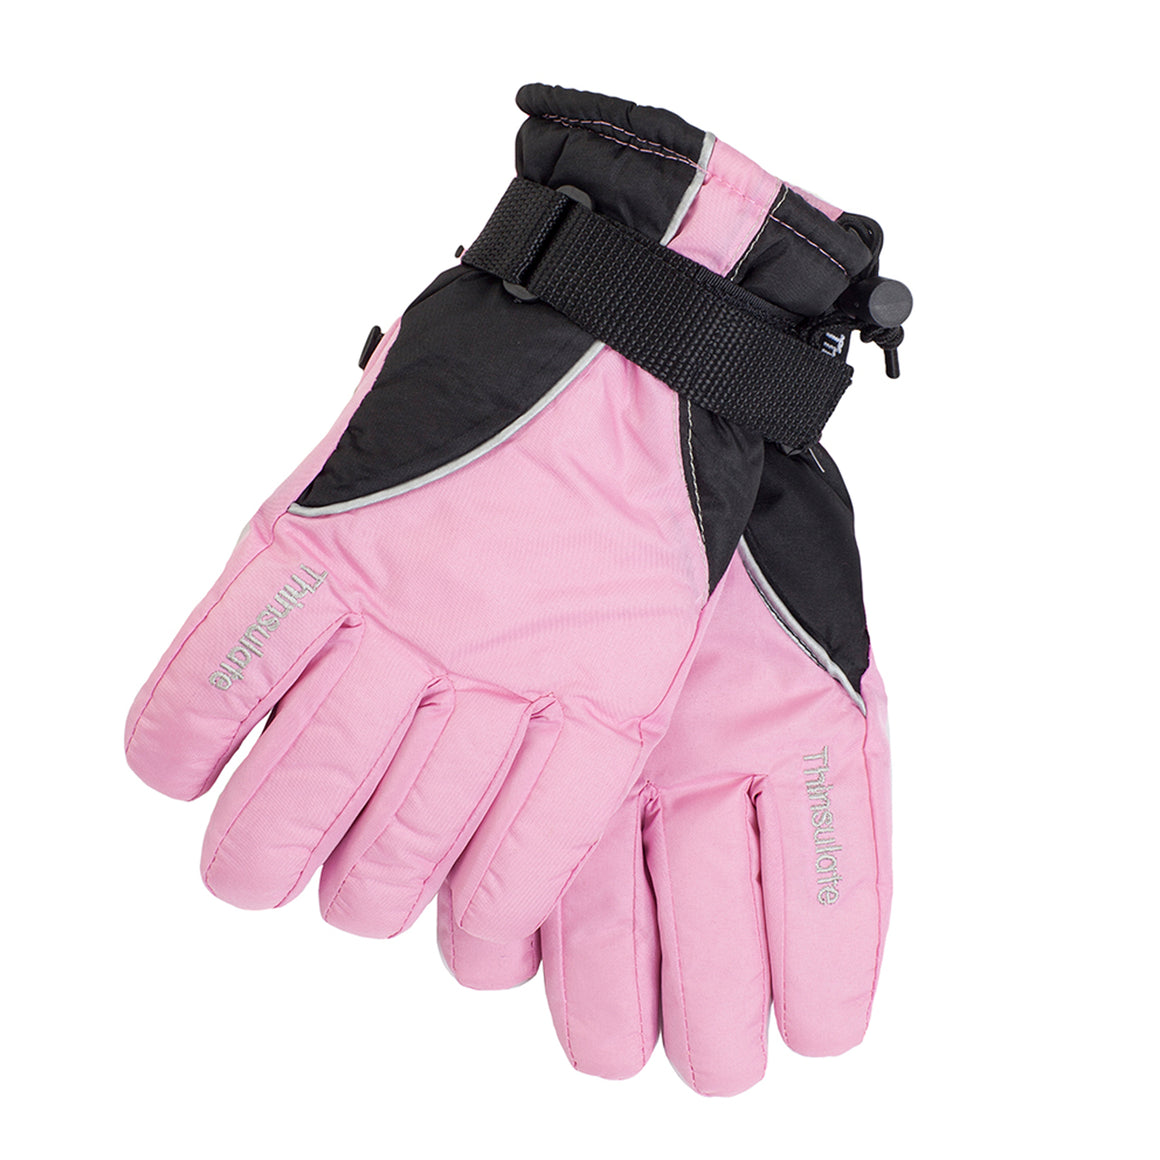 Ski Gloves in Pink